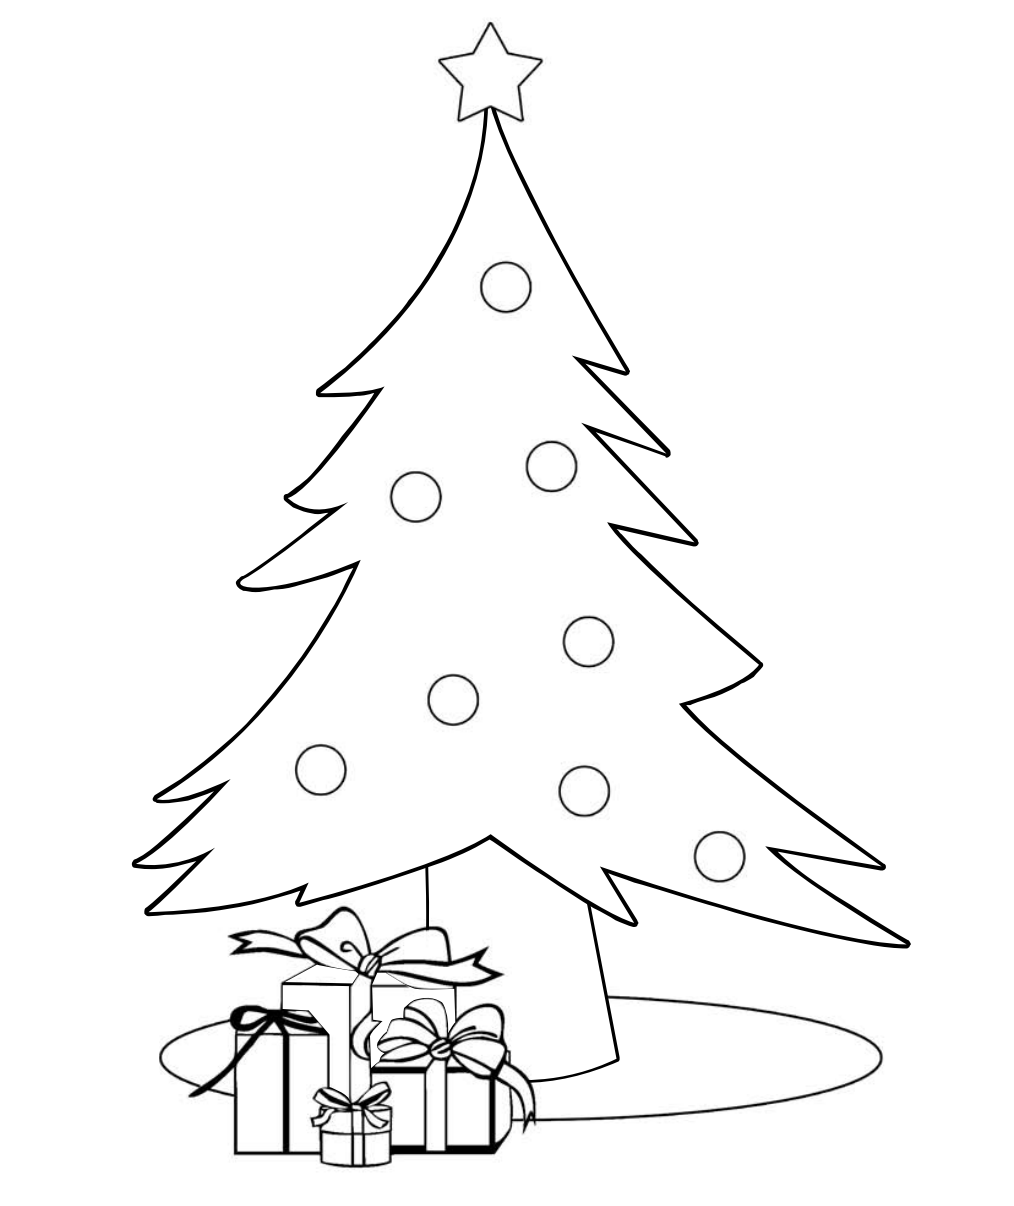 13 Printable Christmas Coloring Pages For Kids | Parents